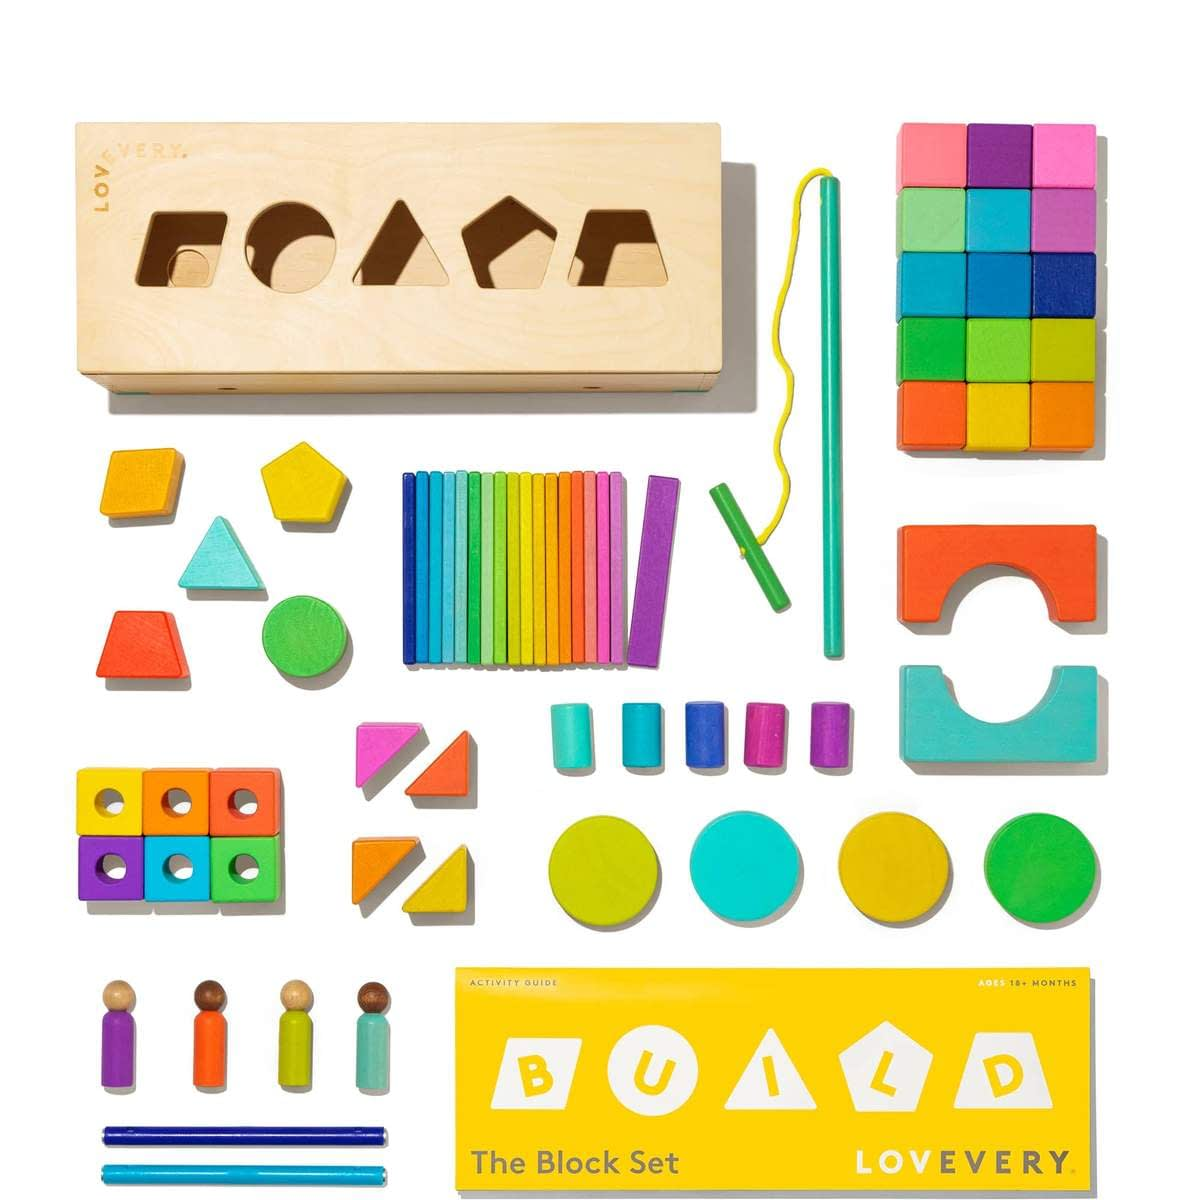 The Block Set by Lovevery – Solid Wood Building Blocks and Shapes